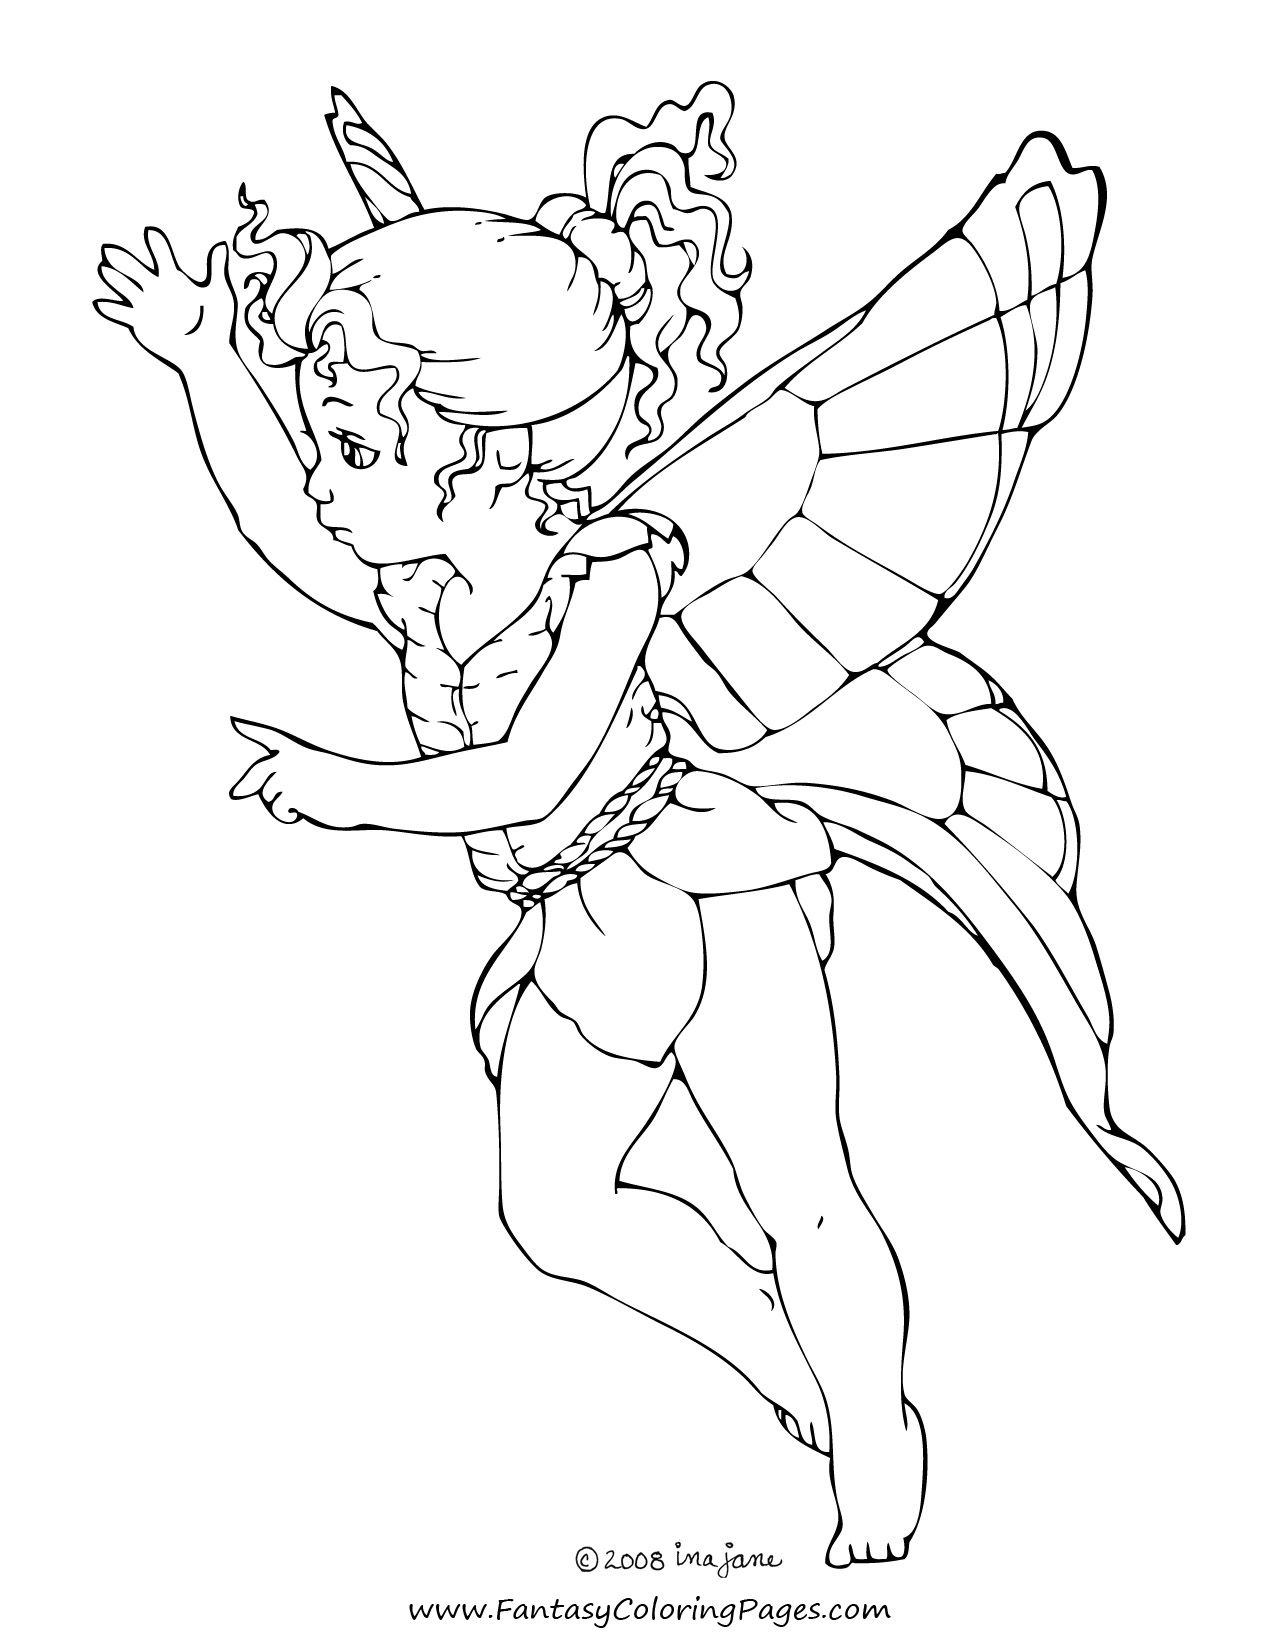 Free Lil Fairy Coloring Pages Millie Jpg 1275 1650 Fairy Coloring Pages Fairy Coloring Coloring Pages